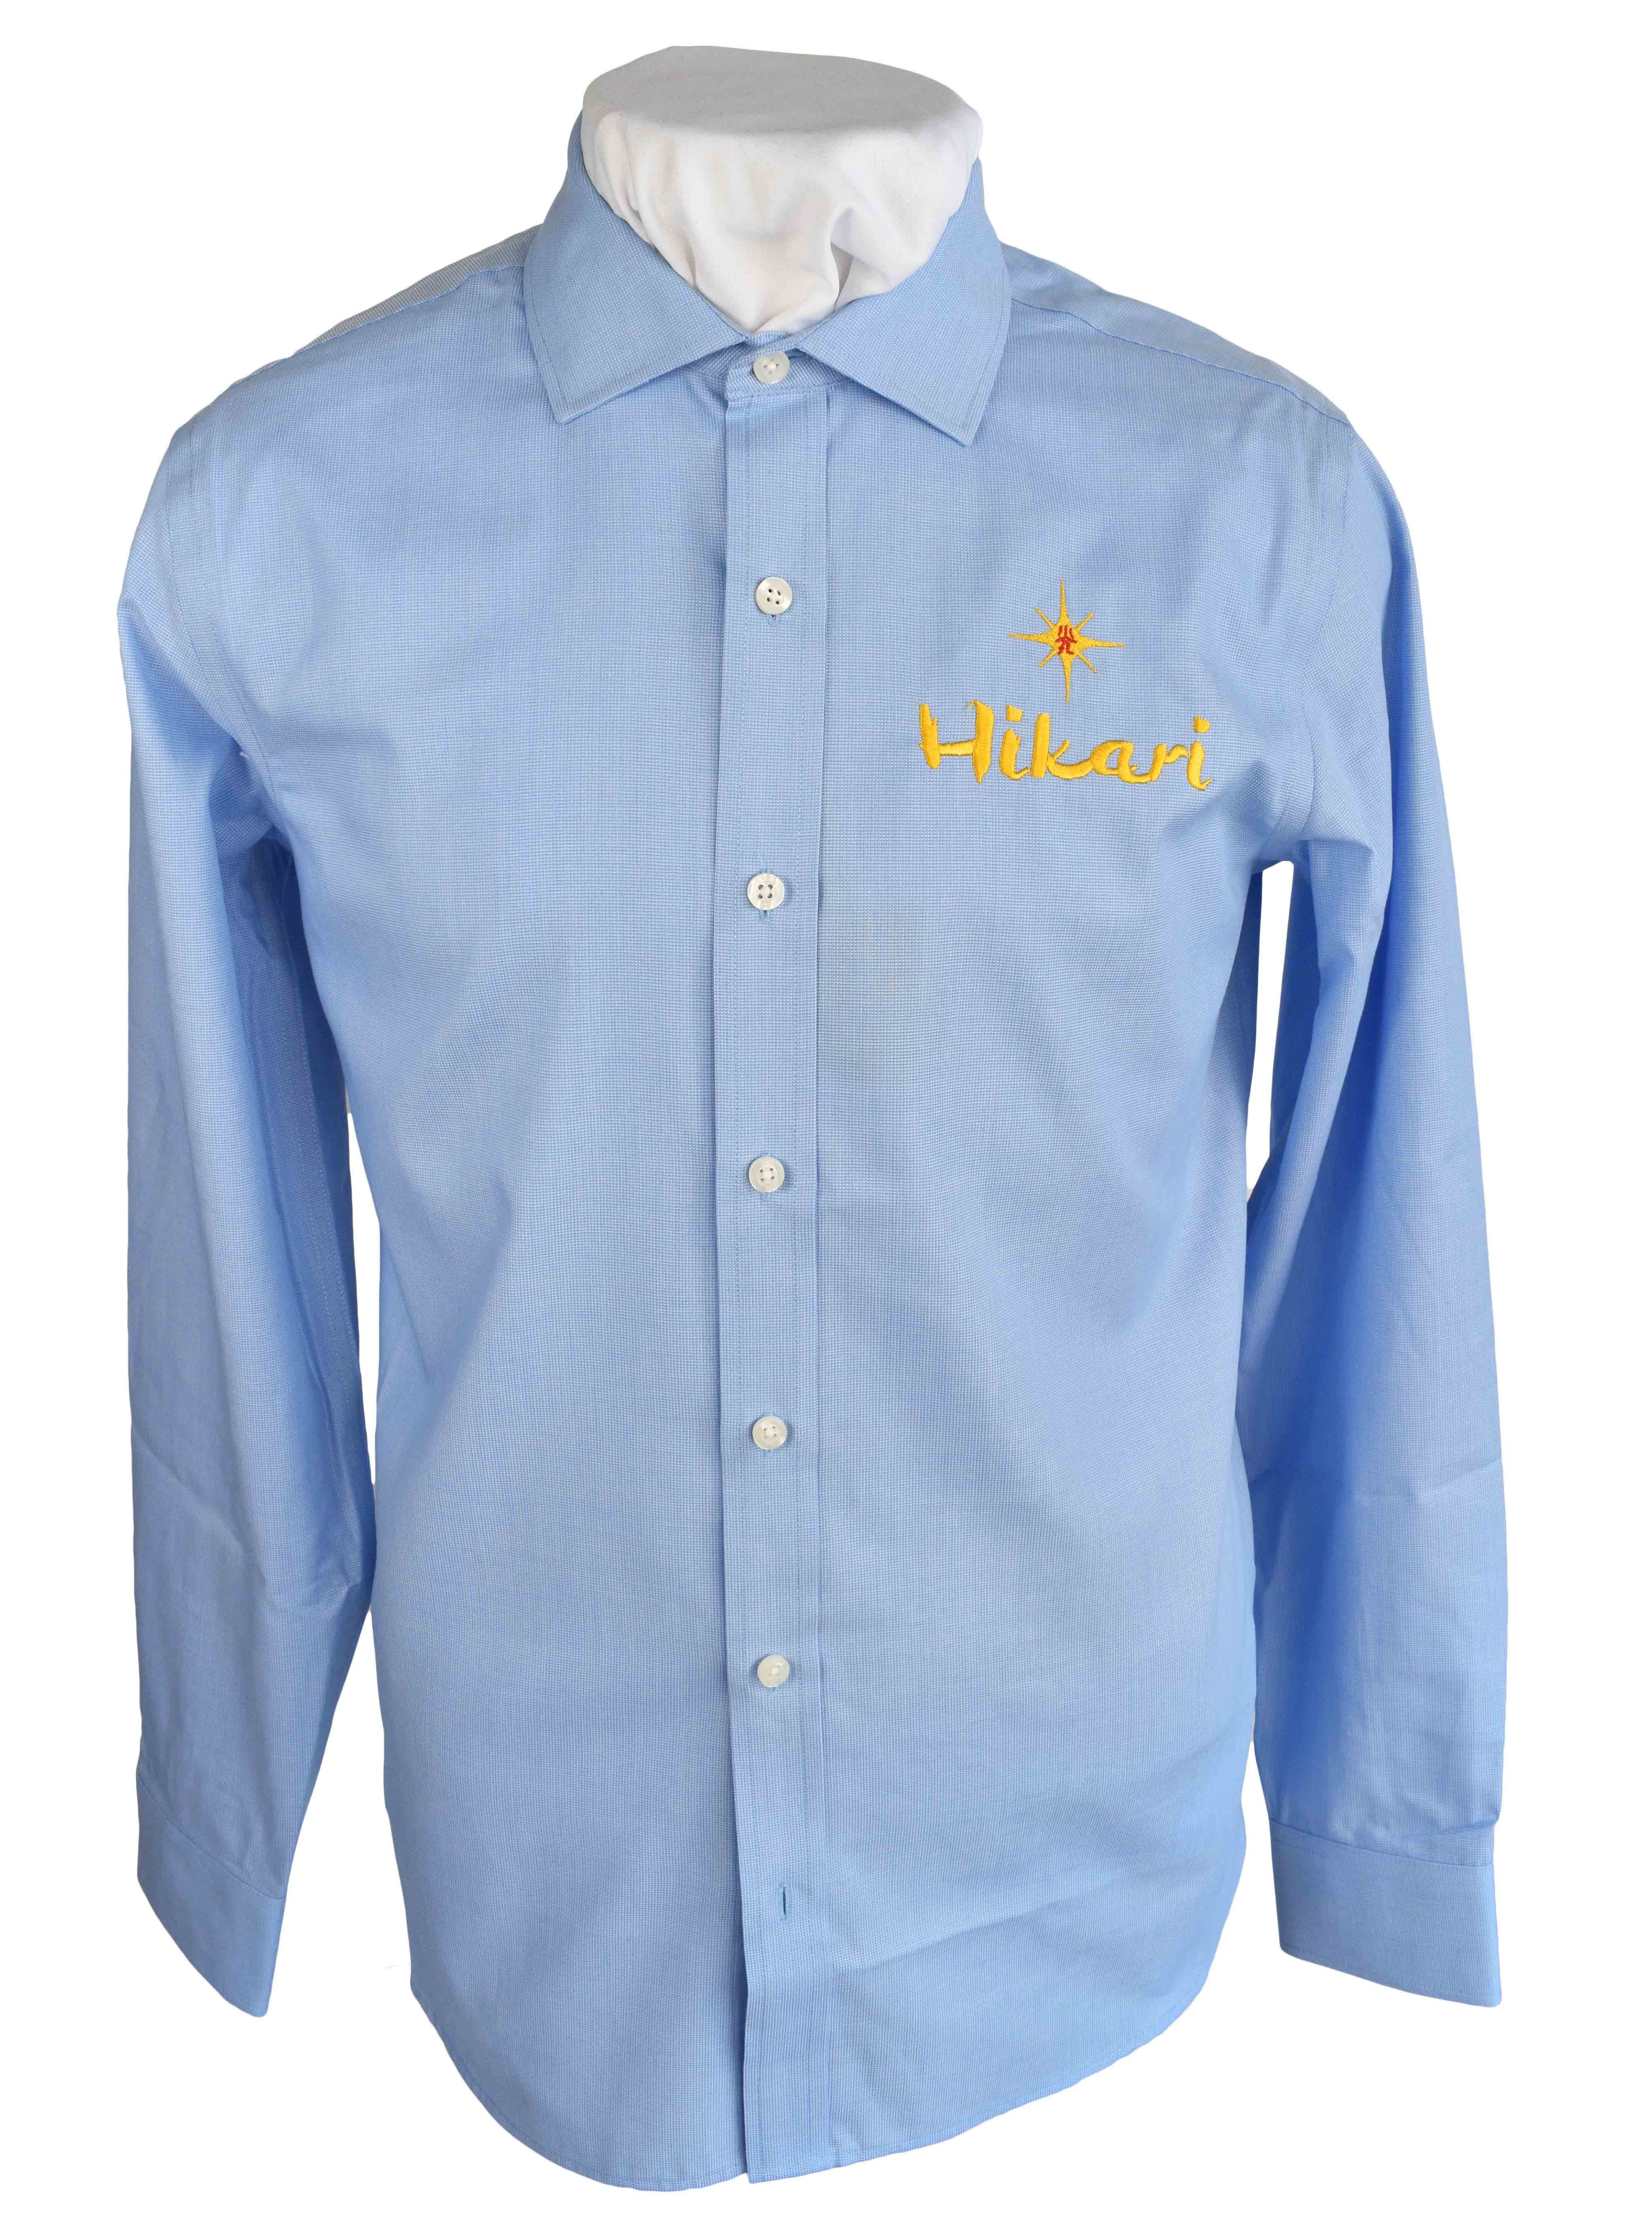 dress shirt with embroidery logo